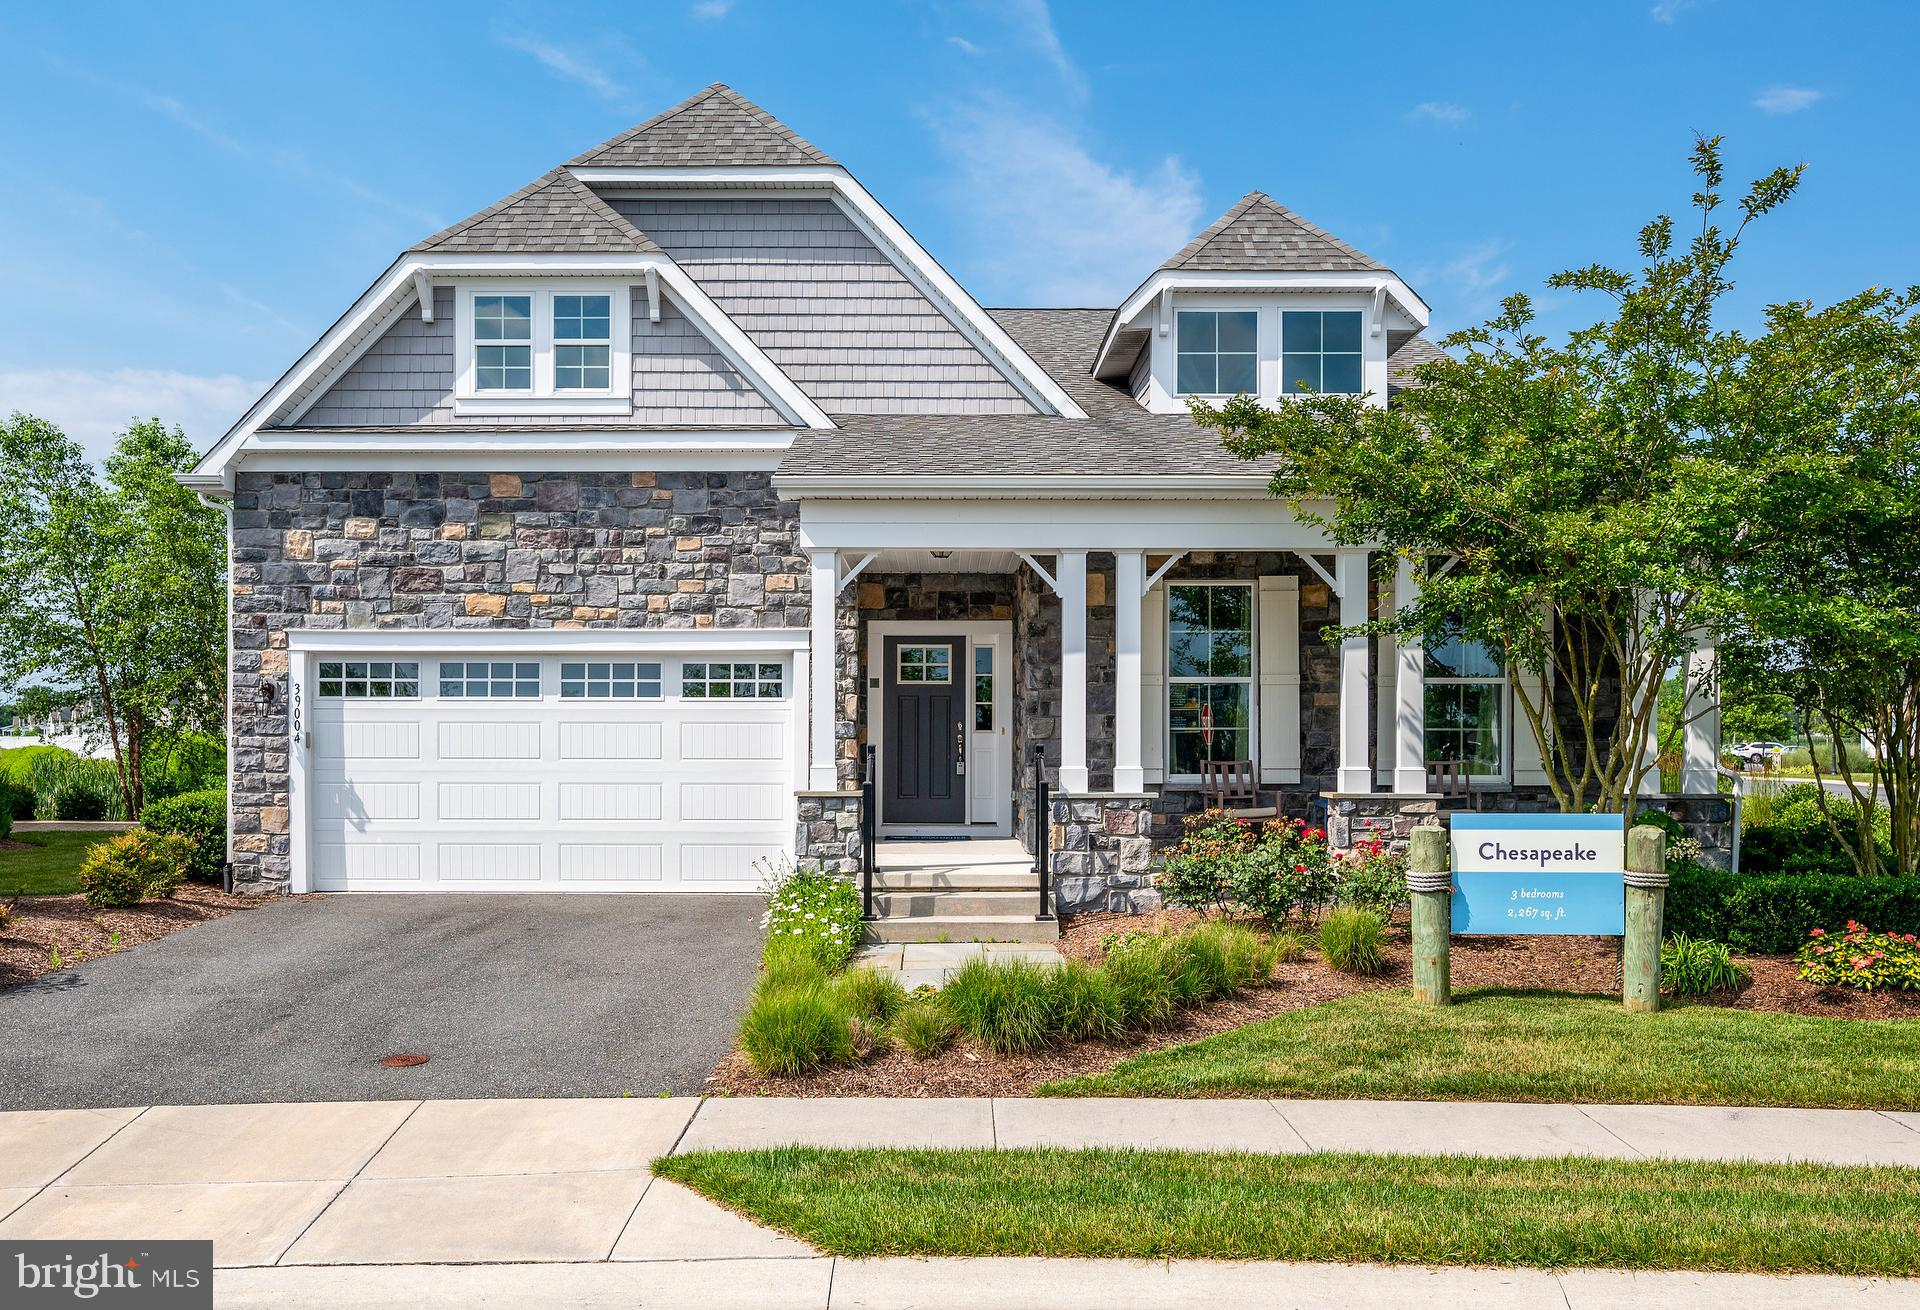 """Move in Ready! The impressive Chesapeake Model is finally available to purchase in Millville by the Sea.  As you enter through the stunning foyer into the main living area, the home opens up to a beautiful kitchen with an oversized granite island,  overlooking the sunroom and vaulted ceiling great room. Upgrades in this beautiful model home include a wine bar and large office/library/4th bedroom with french doors and numerous windows, providing natural light throughout. A spacious master bedroom comes with dual walk-in closets and a beautifully appointed master bath.  The oversized guest bedroom with shiplap walls has an ensuite bathroom that can also be accessed from the hallway by other guests.   All of this plus multiple closets and a separate powder room complete the spacious 1st Floor.  On the 2nd floor you will find a loft with private guest quarters and full bathroom adding a separate living space for family or guests.   Enjoy outdoor living space with the roomy screened porch, leading out to a gorgeous paver patio, with built in fire pit and grill. A 2 car attached garage also has additional storage space above.  You can't beat this location, as the end house on a quiet street of just 4 homes, right across from all of the amazing amenities Millville by the Sea has to offer! This home is being sold """"As Shown"""", completely move in ready  with all of the gorgeous designer furnishings and touches included.  Just bring your beach bag and enjoy the rest of the summer... Call today for your appointment!"""